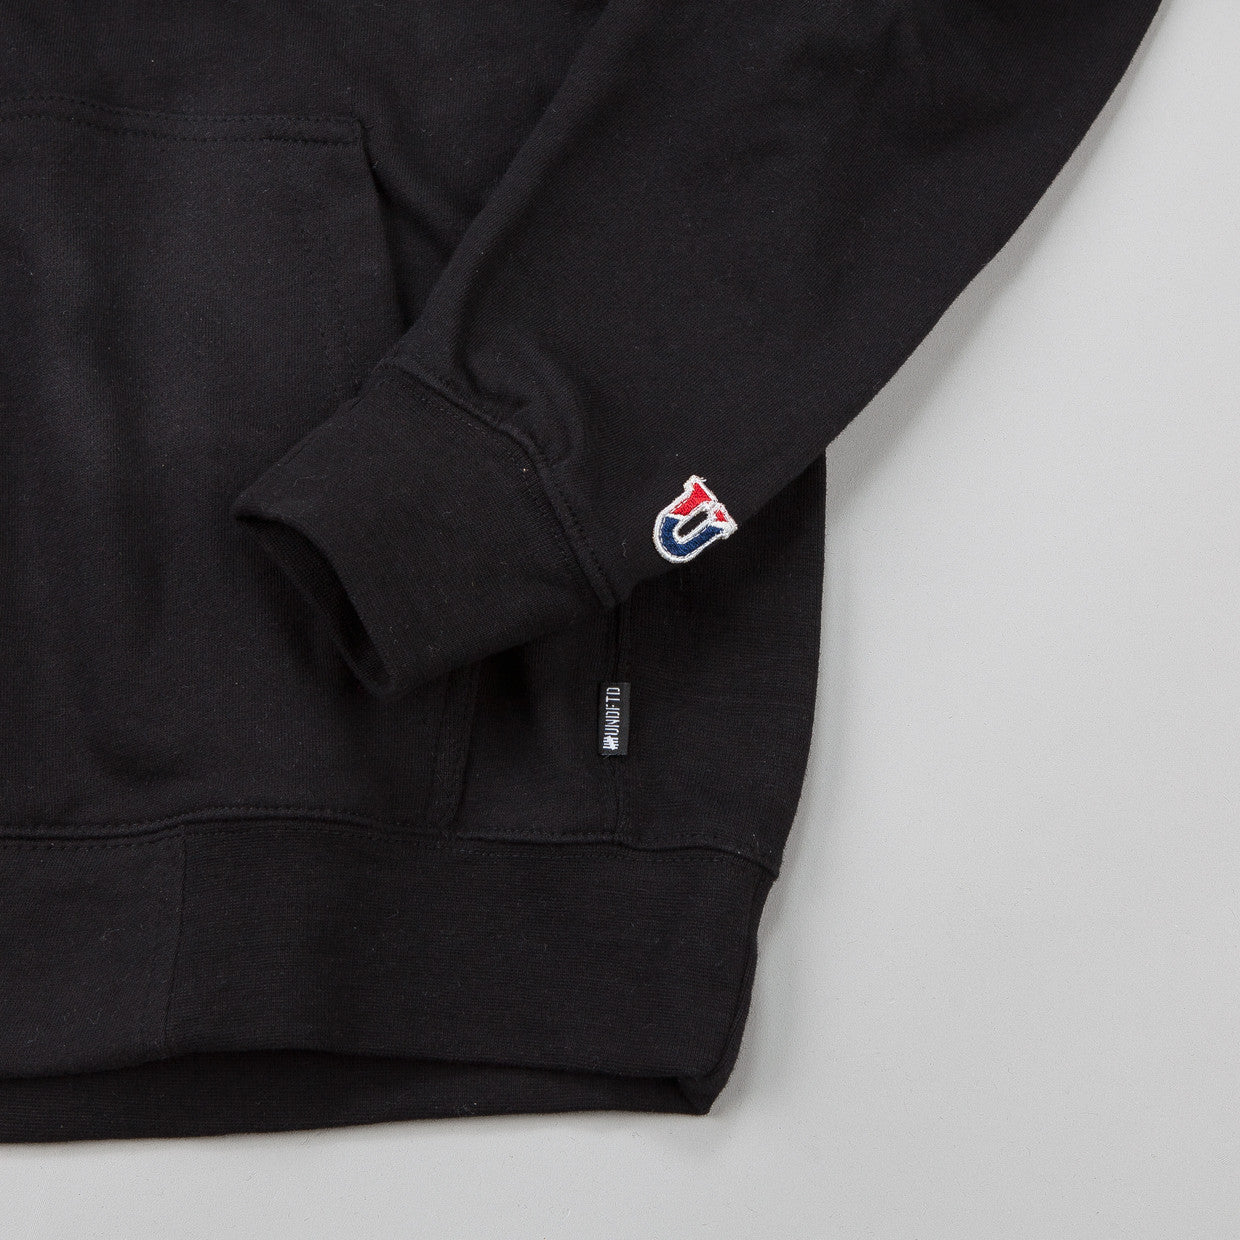 Undefeated BS Zip Hooded Sweatshirt Black